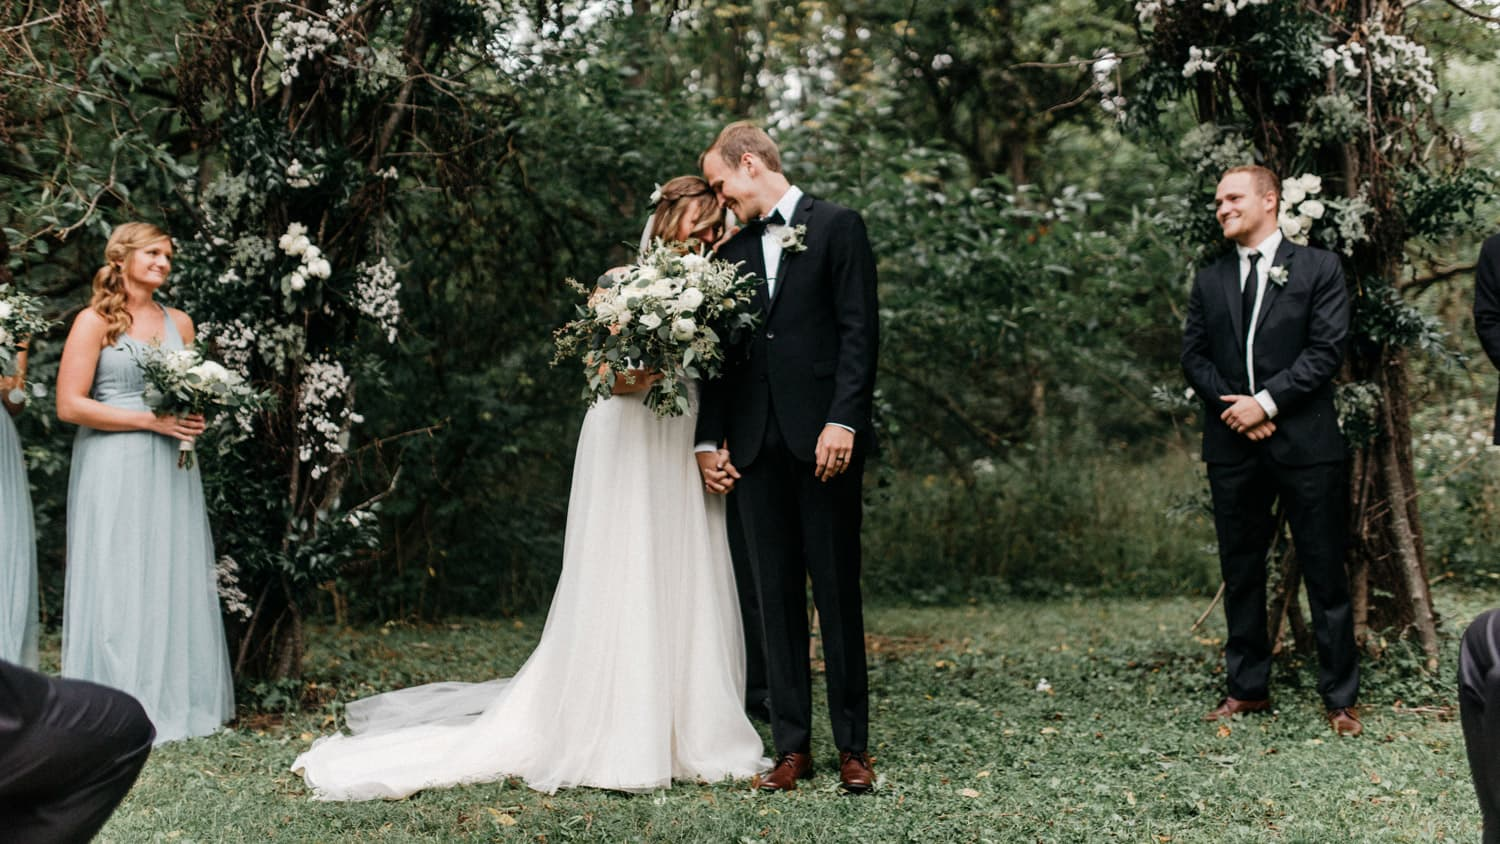 bride and groom share moment together during their outdoor ceremony